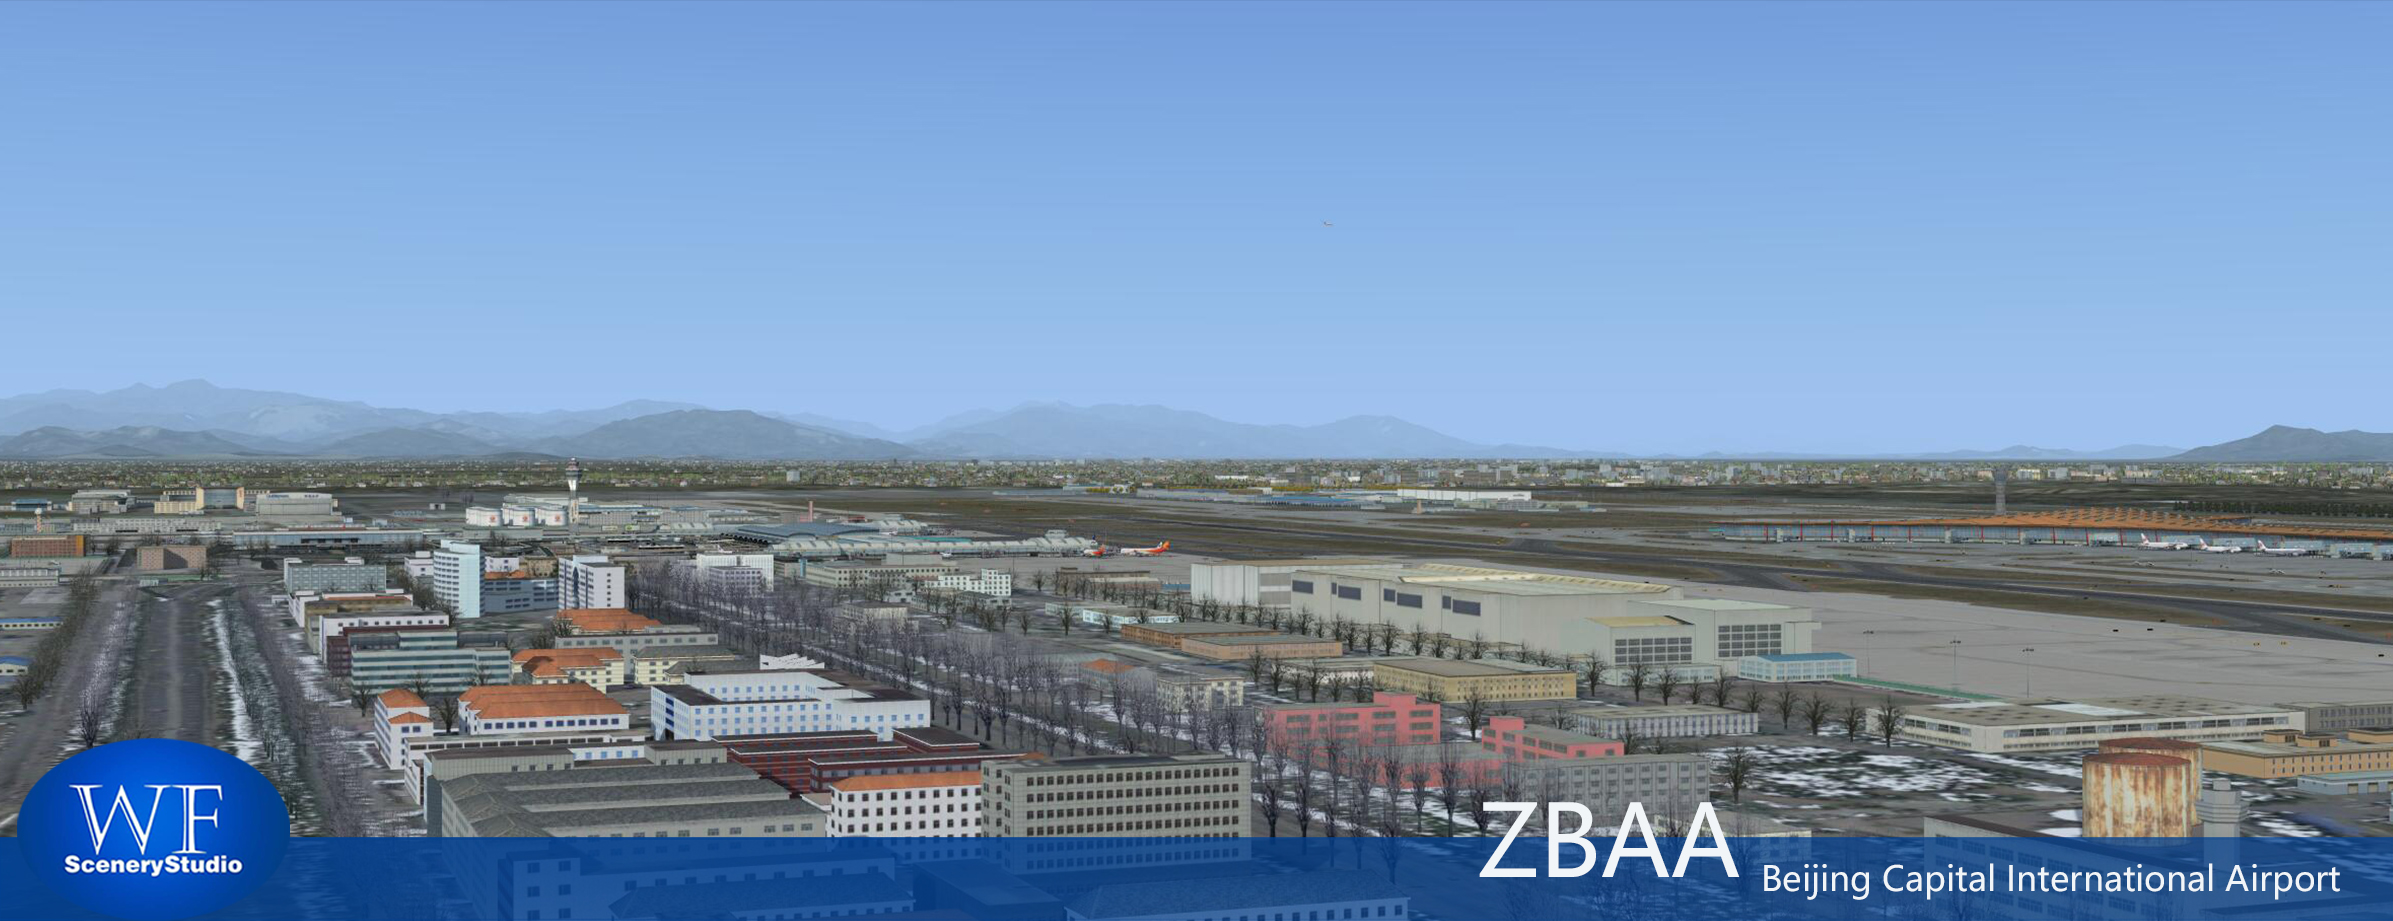 WF SCENERY STUDIO - BEIJING CAPITAL INTERNATIONAL AIRPORT ZBAA FSX P3D